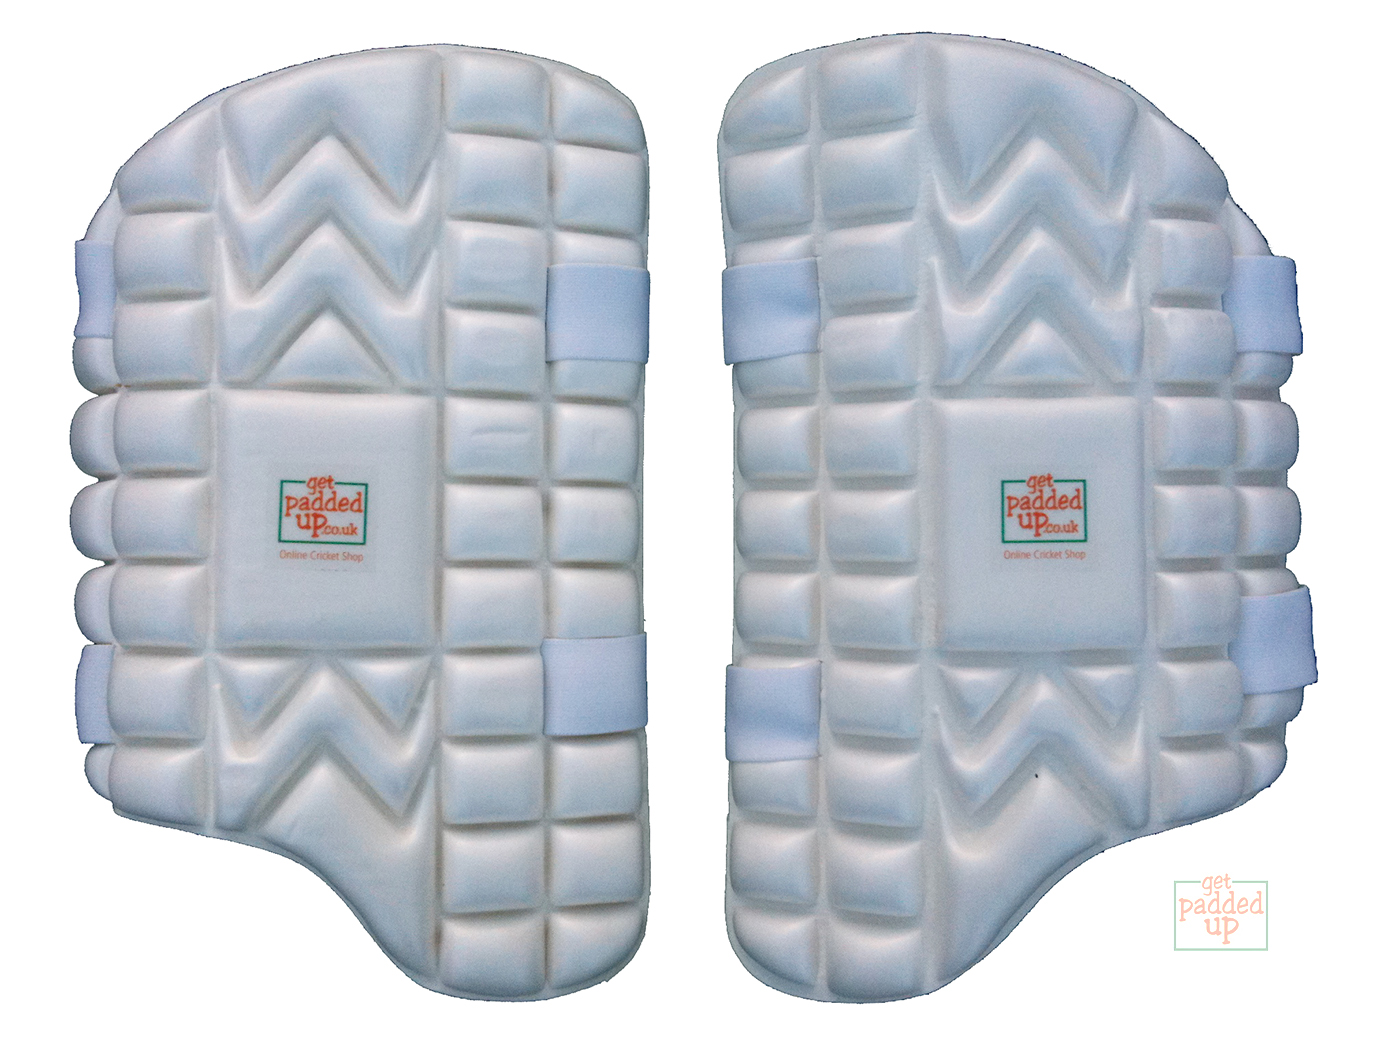 getpaddedup ULTRA BUBBLE MOLDED CRICKET THIGH PAD